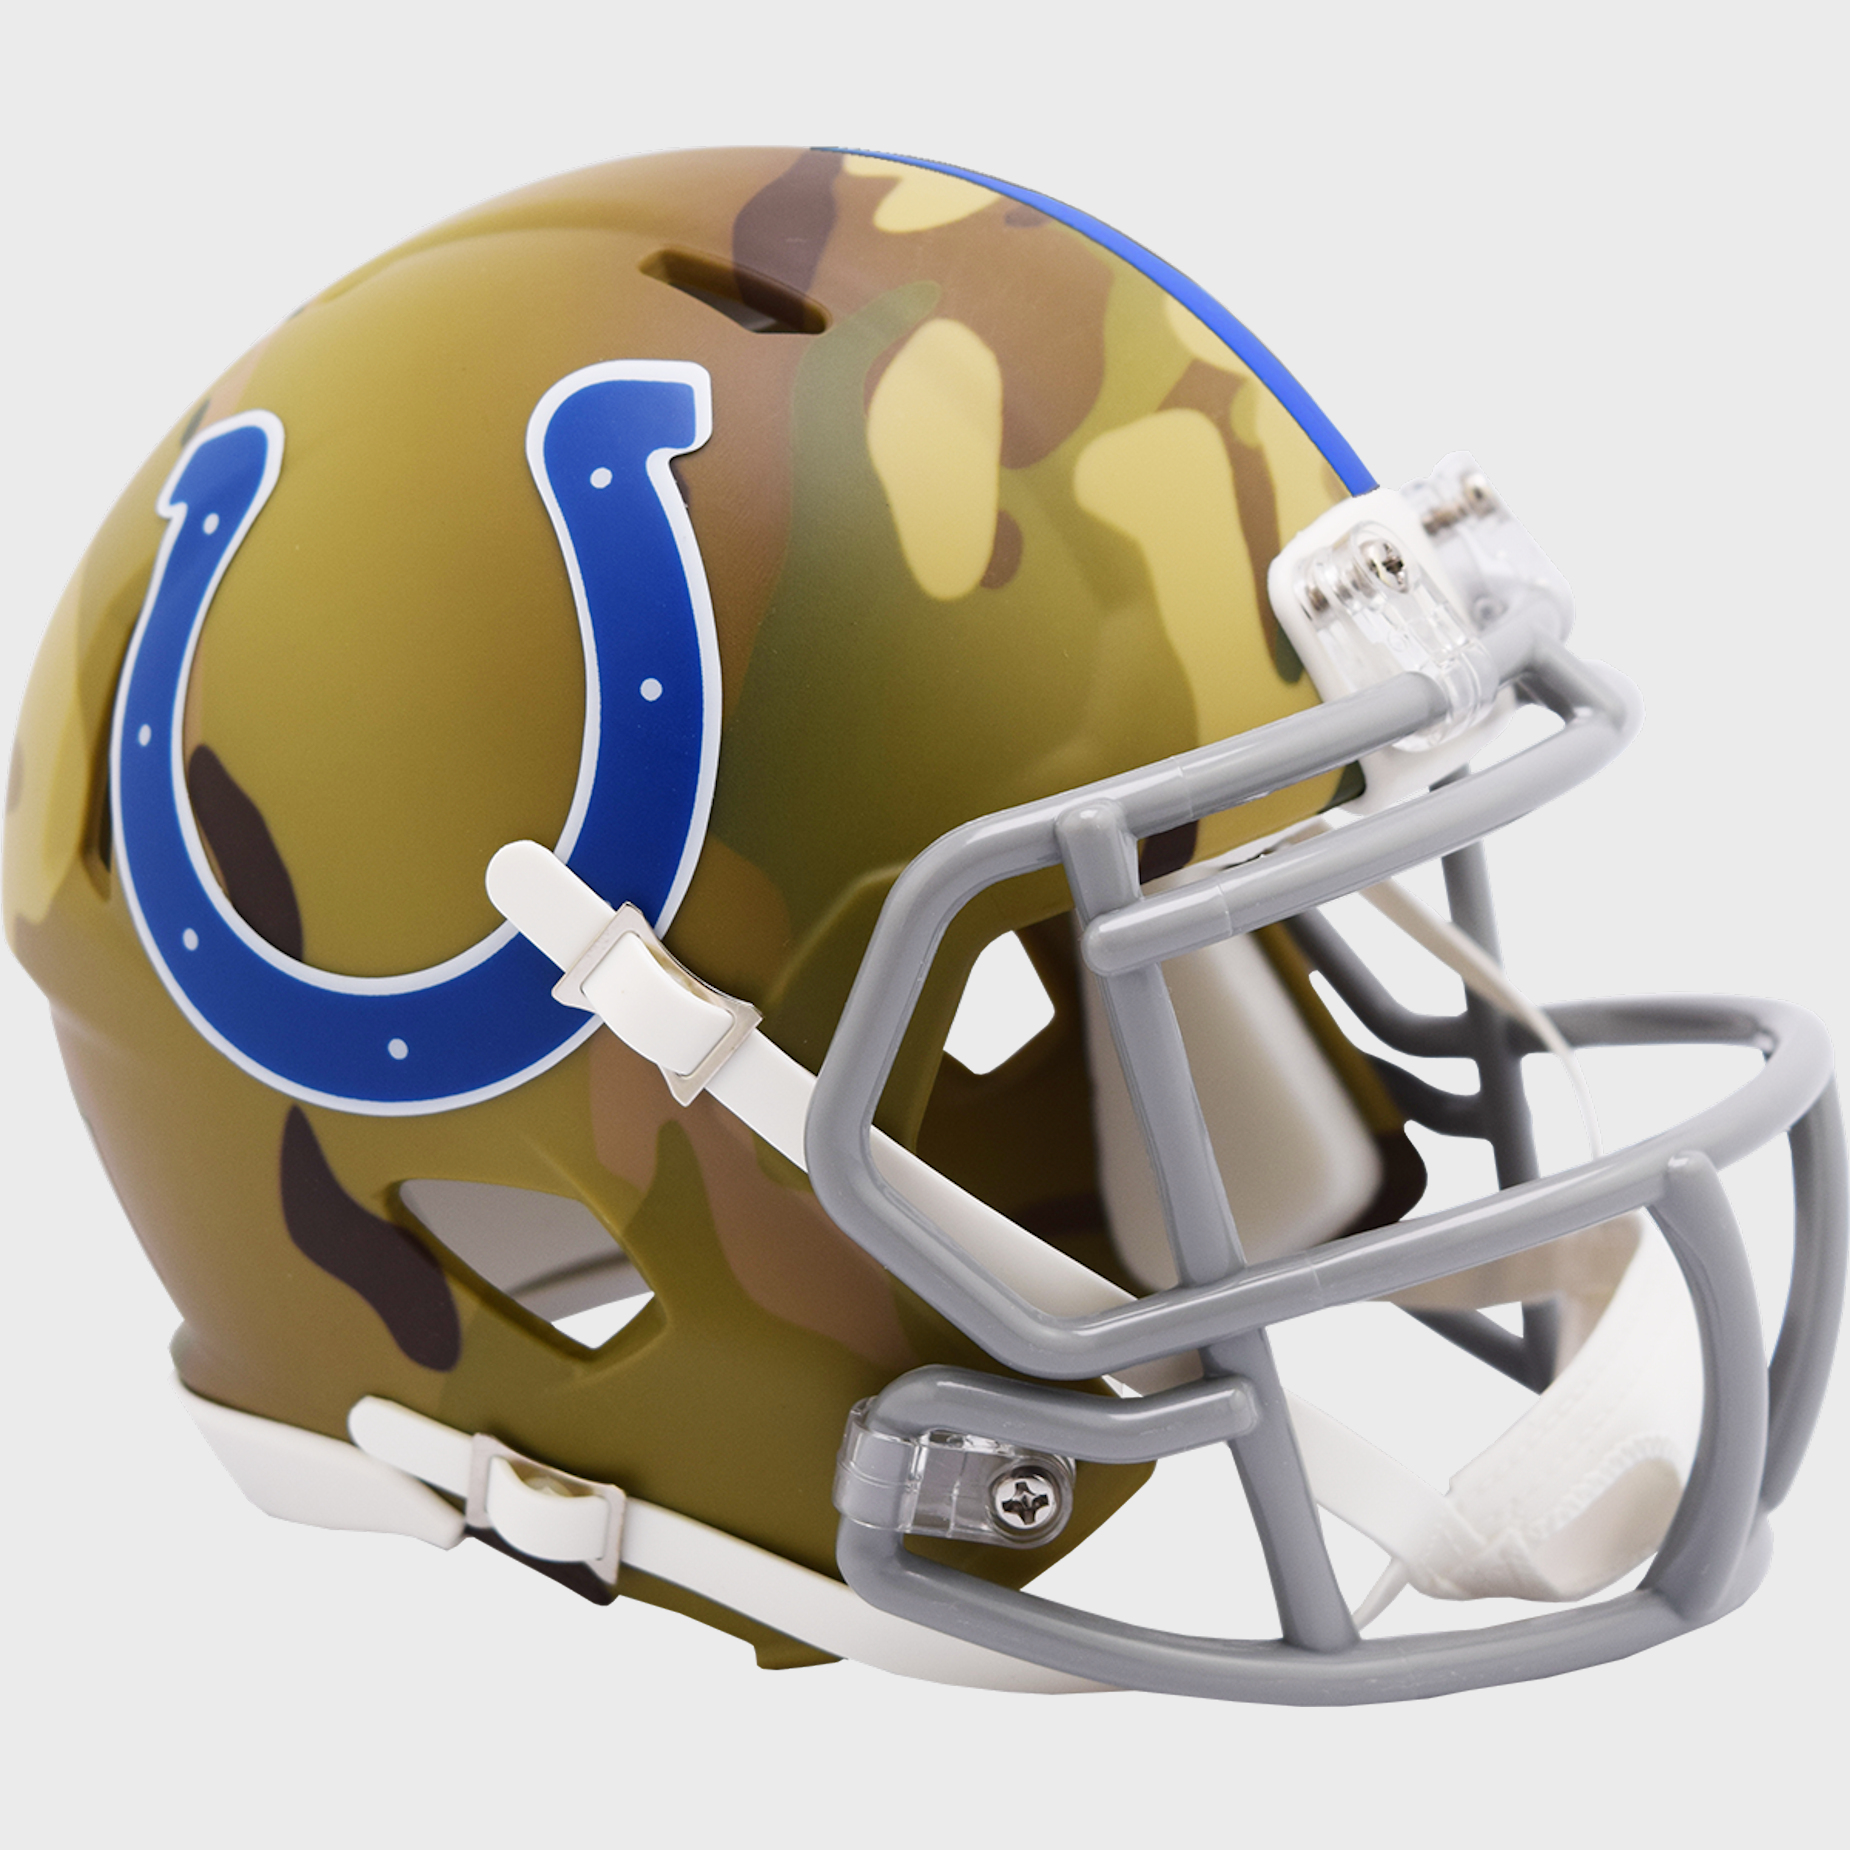 Indianapolis Colts NFL Mini Speed Football Helmet <B>CAMO</B>